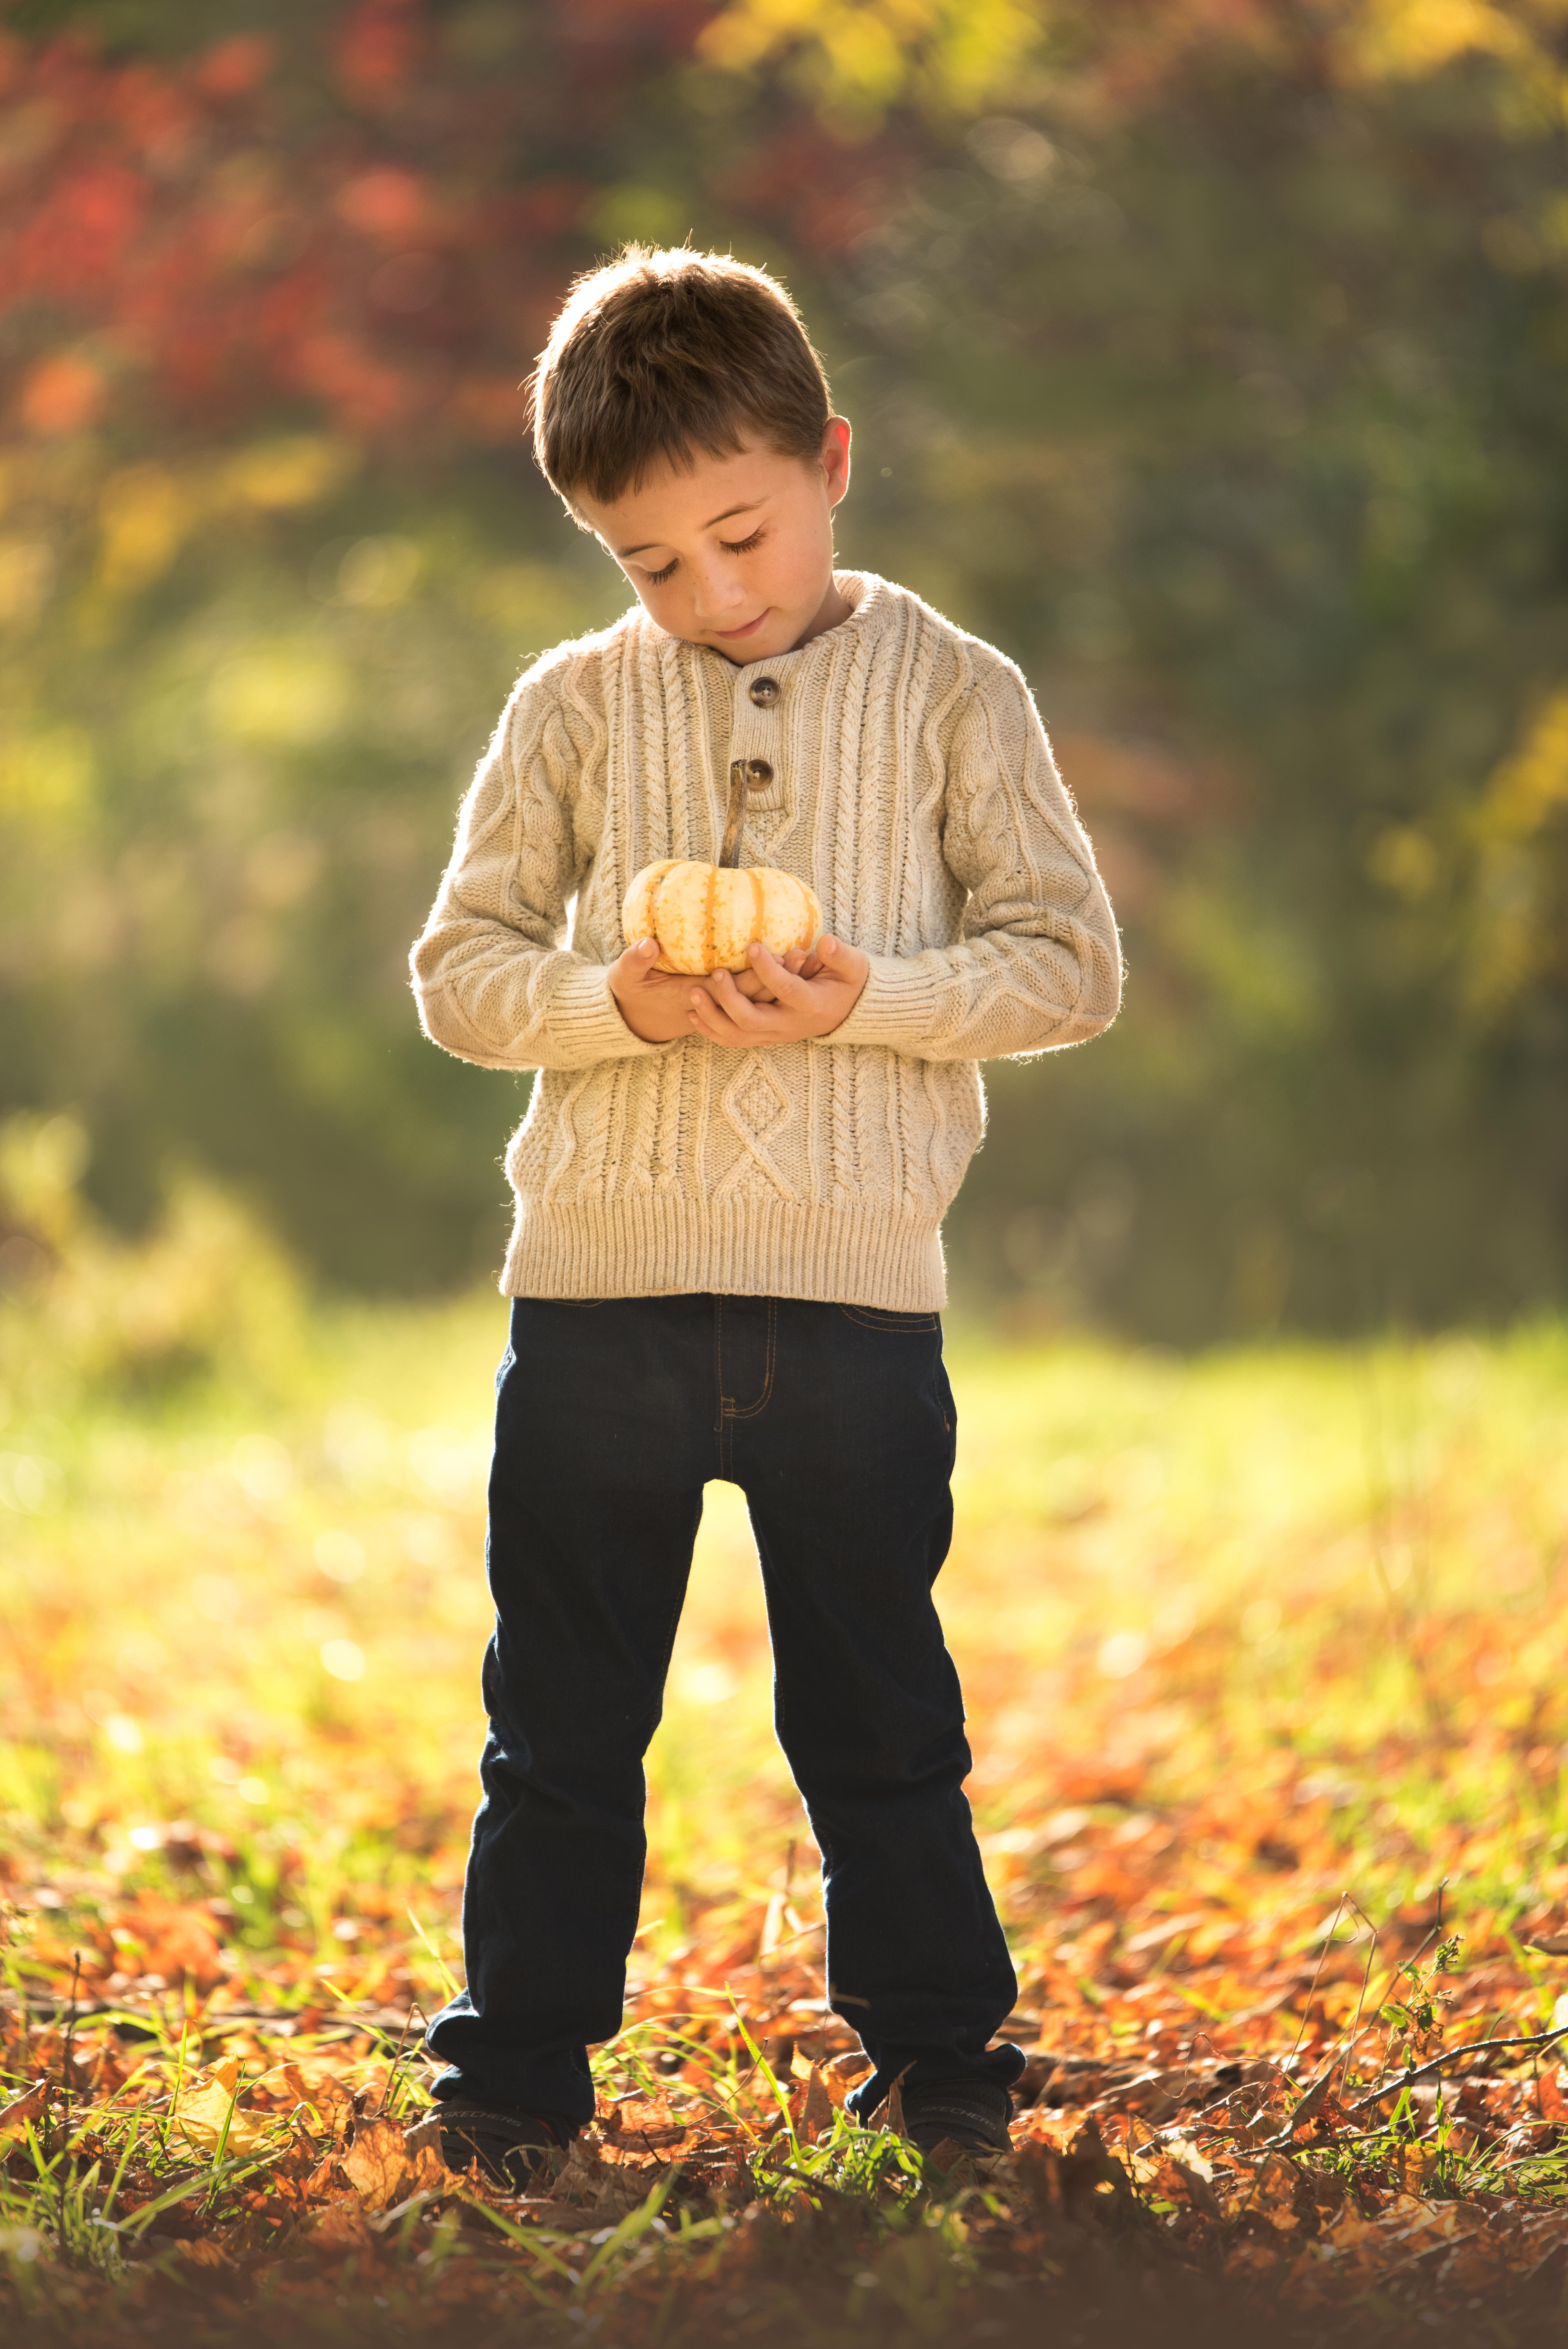 Pumpkin Patch Fall Kids Photos